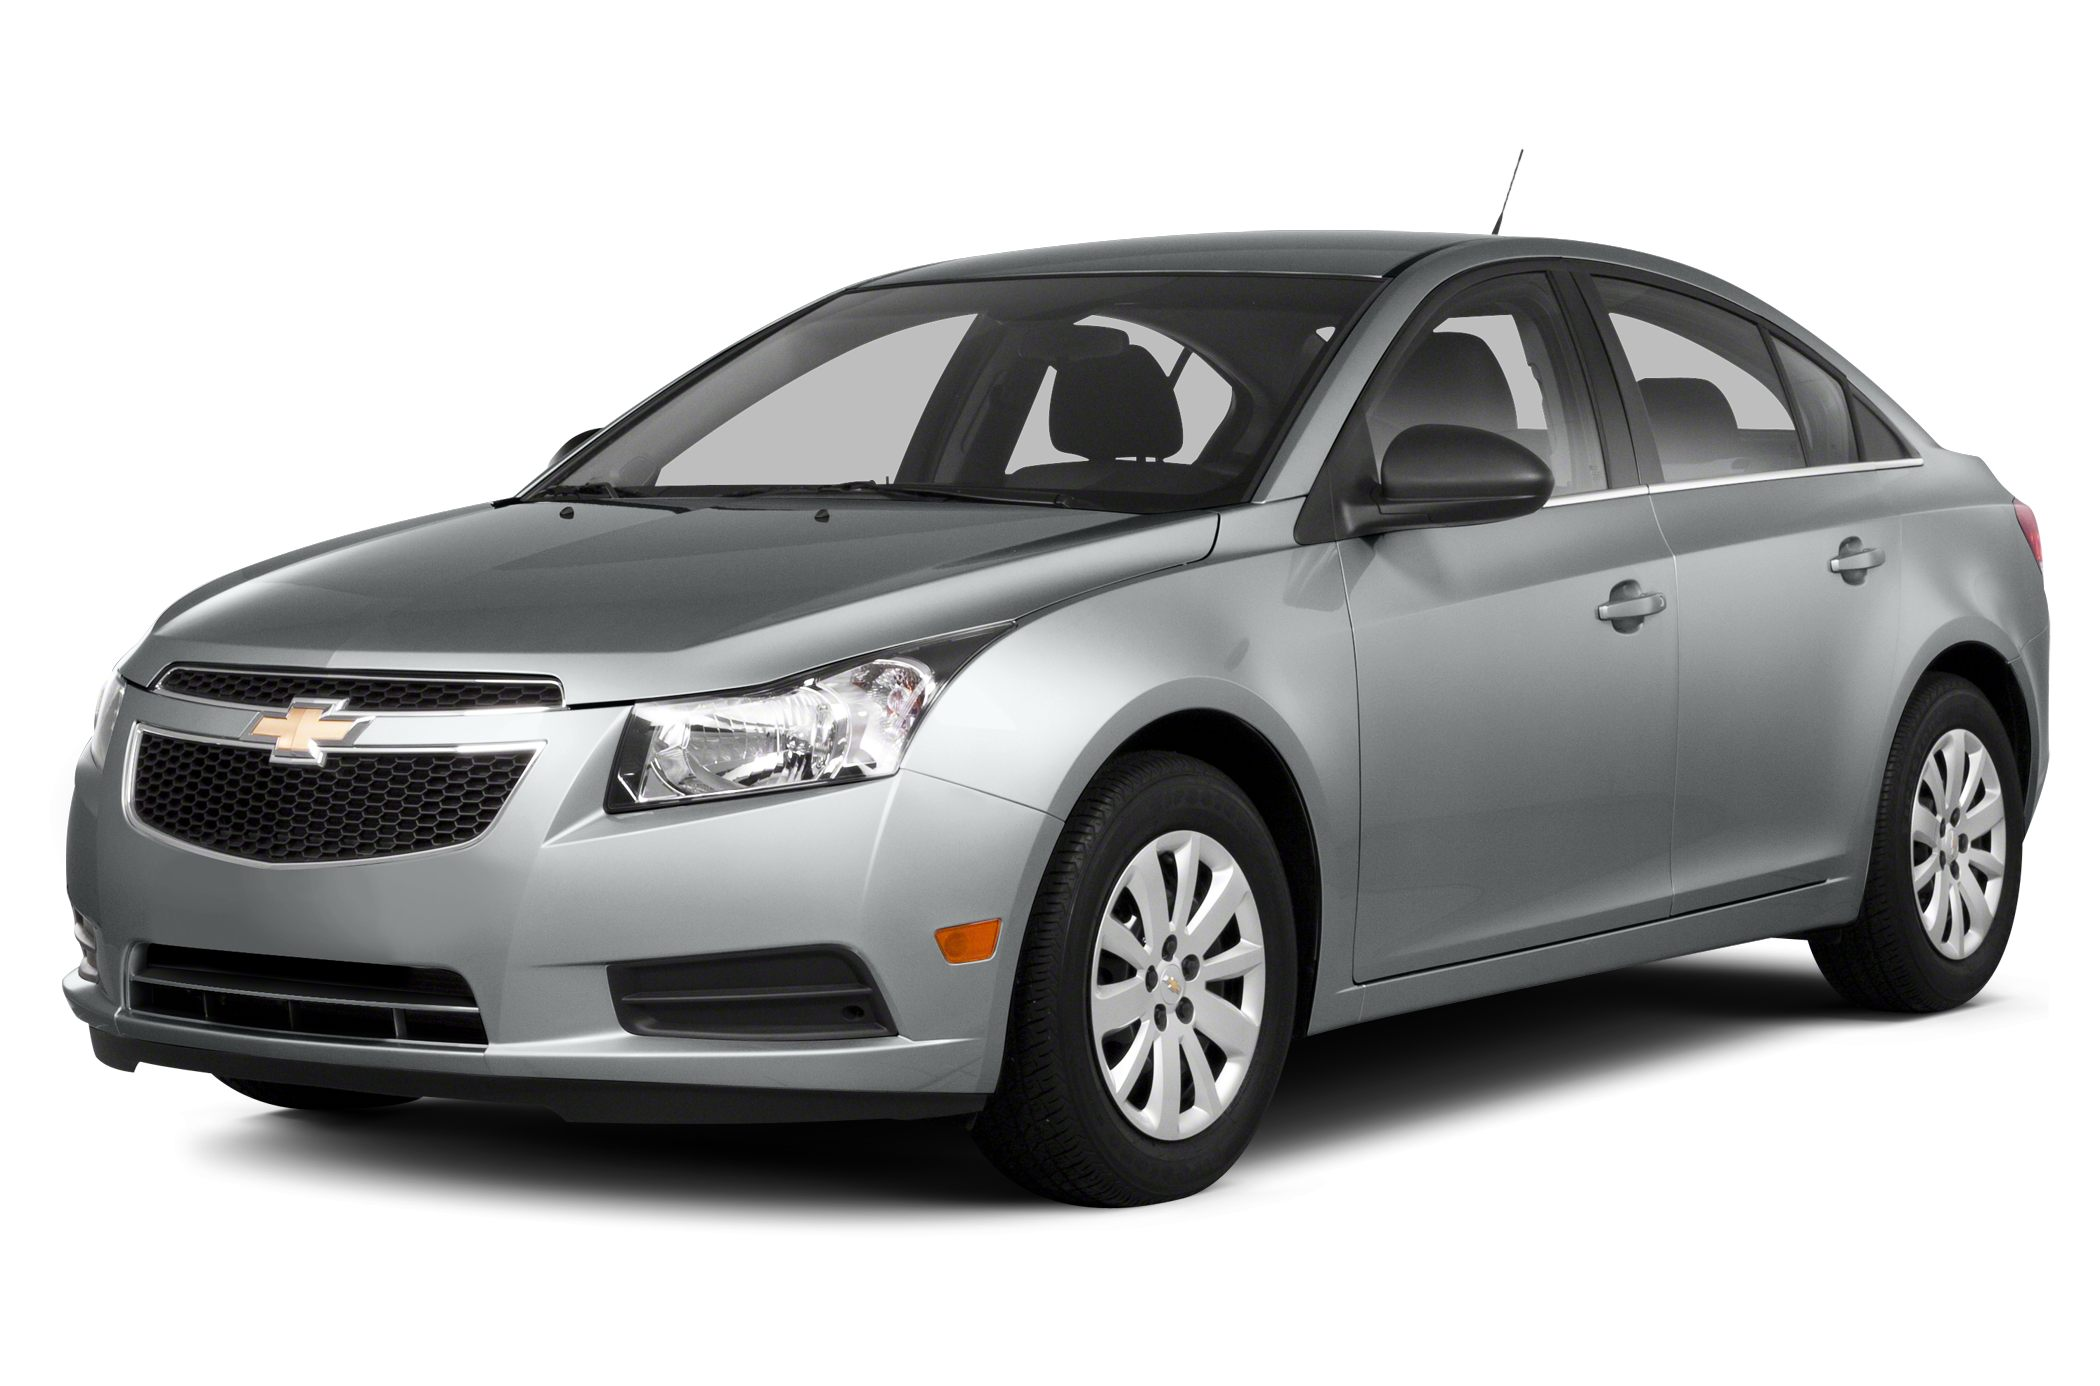 2013 Chevrolet Cruze LTZ Sedan for sale in Harrisonville for $17,991 with 24,248 miles.